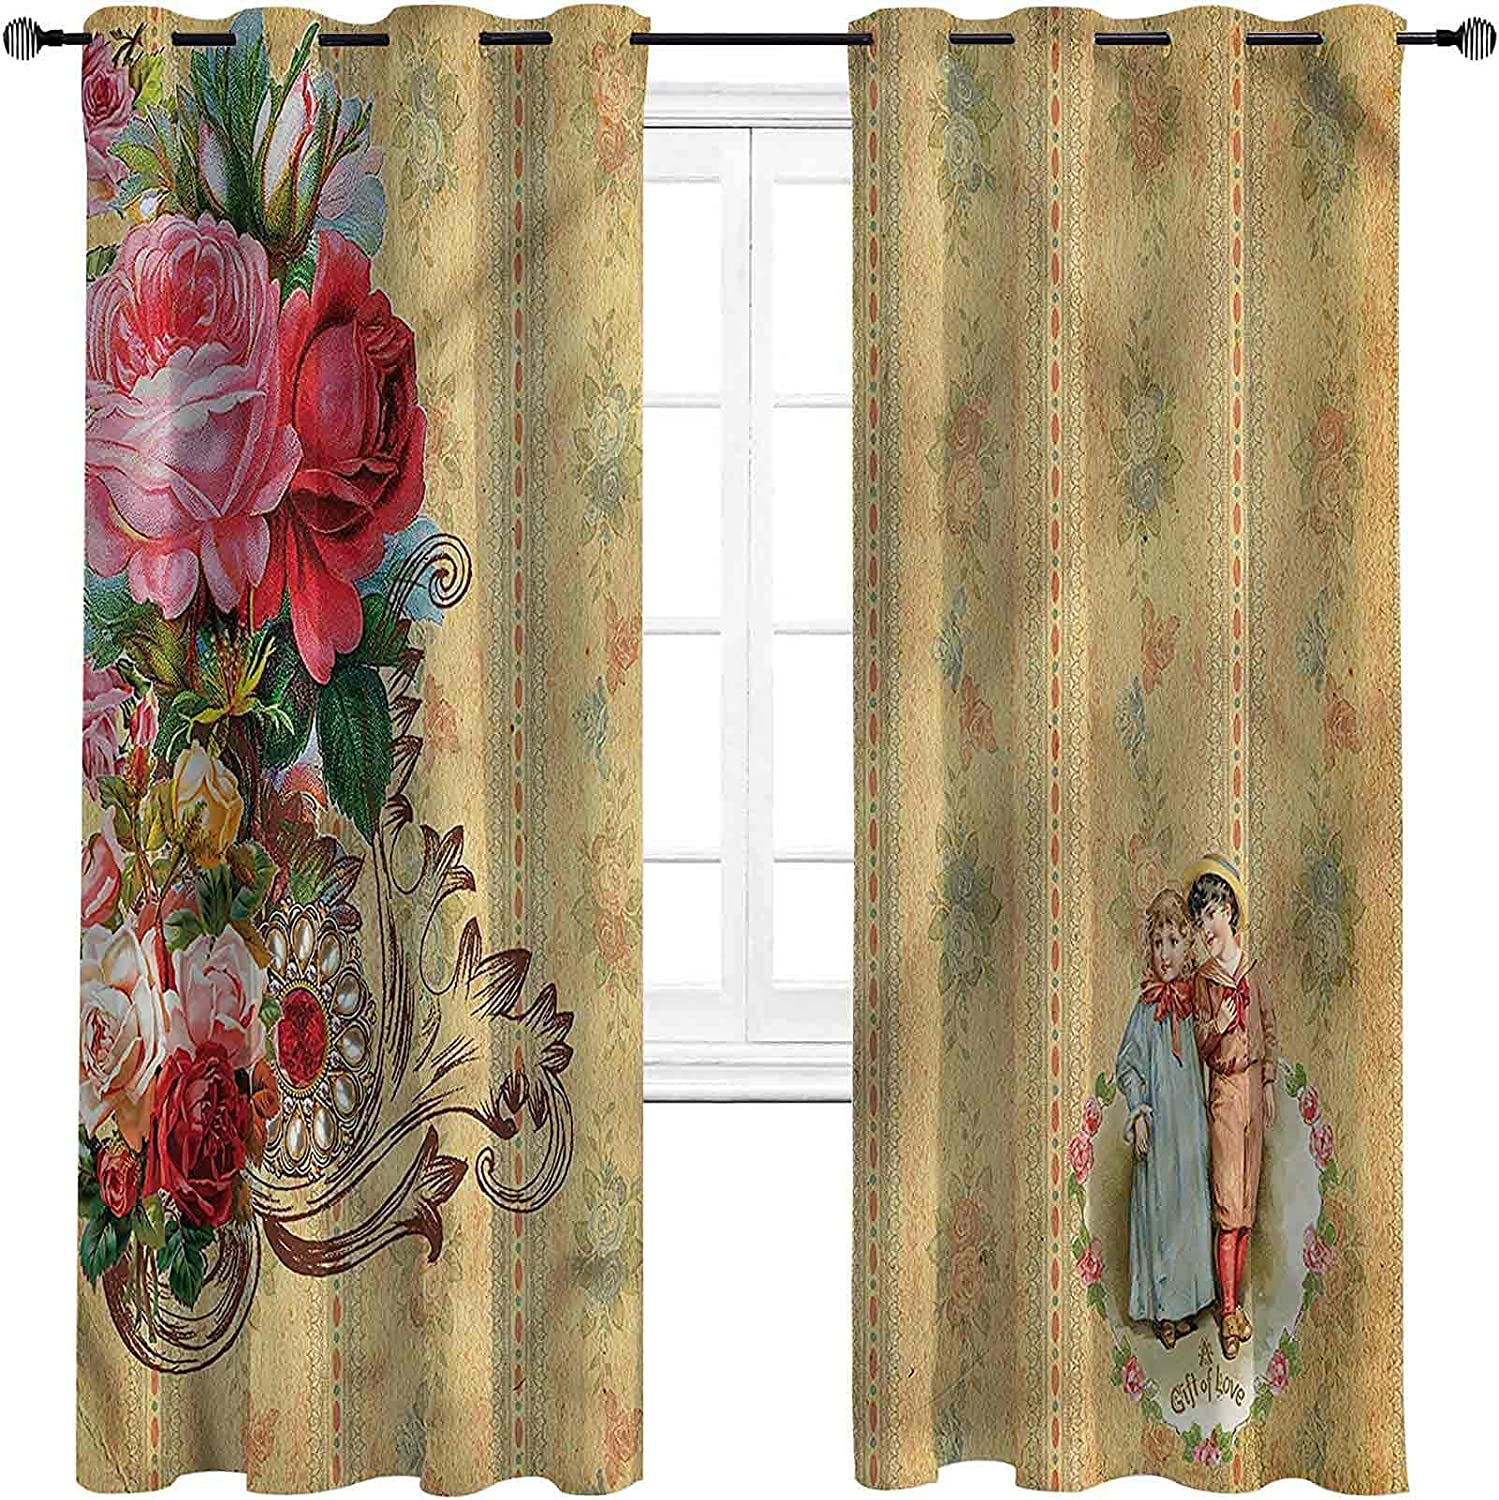 Vintage Bedroom Blackout Ranking TOP11 Curtains Memphis Mall Romantic Country Roses Full